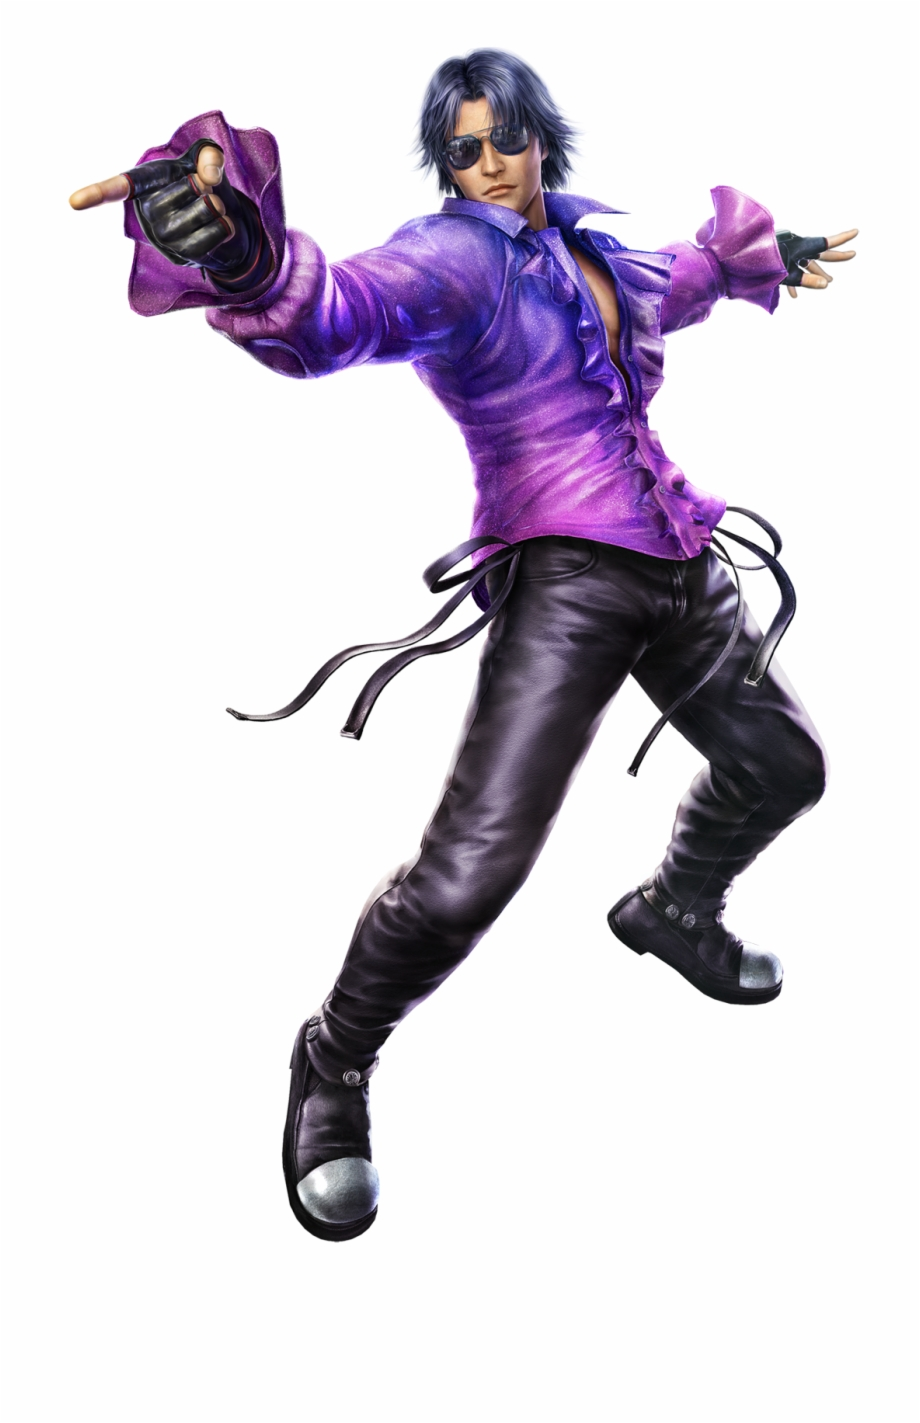 Tekken tag tournament clipart graphic freeuse stock Ttt2 Tekken Tag Tournament 2 Violet Chao - Tekken Tag ... graphic freeuse stock